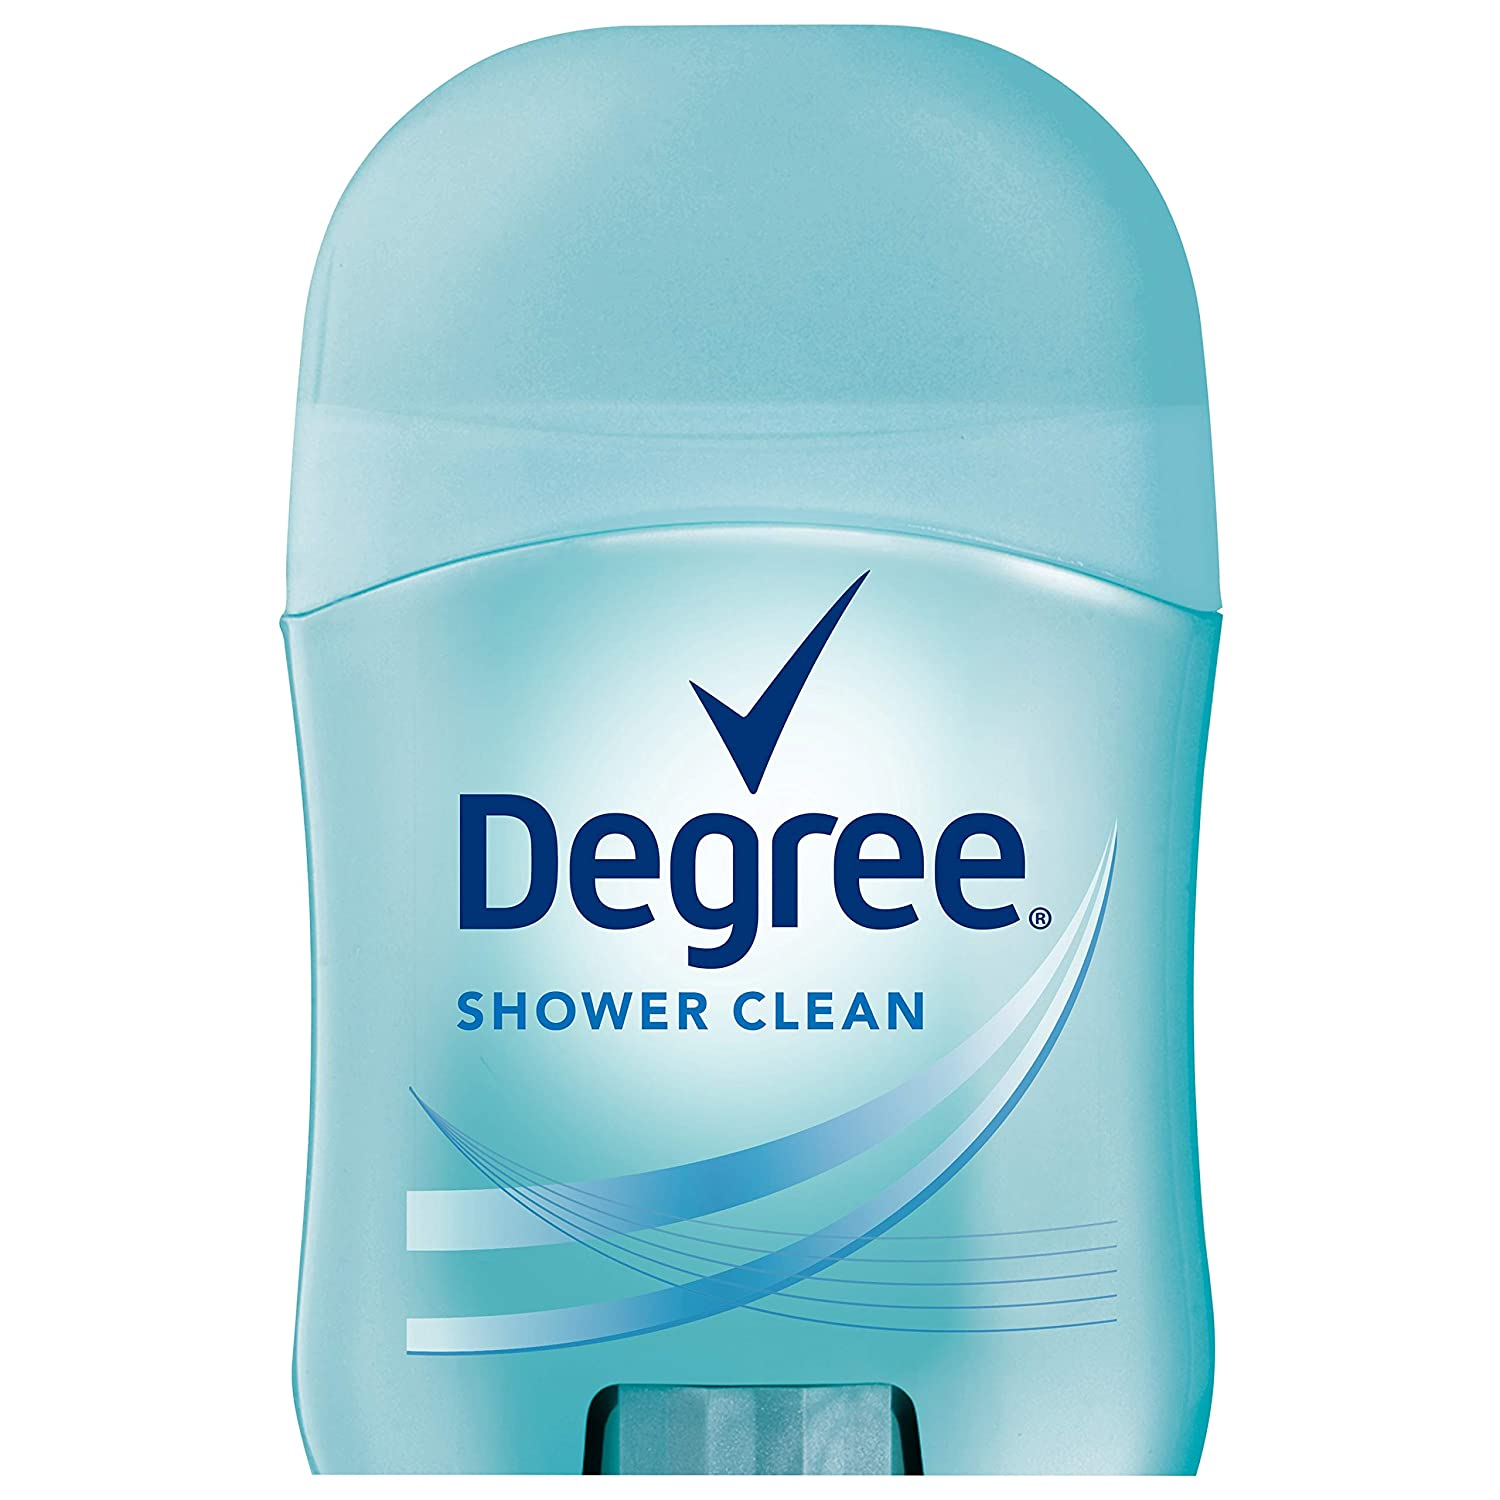 Degree Shower Clean Dry Protection Antiperspirant Deodorant Stick, 0 5 oz  (Pack of 36)